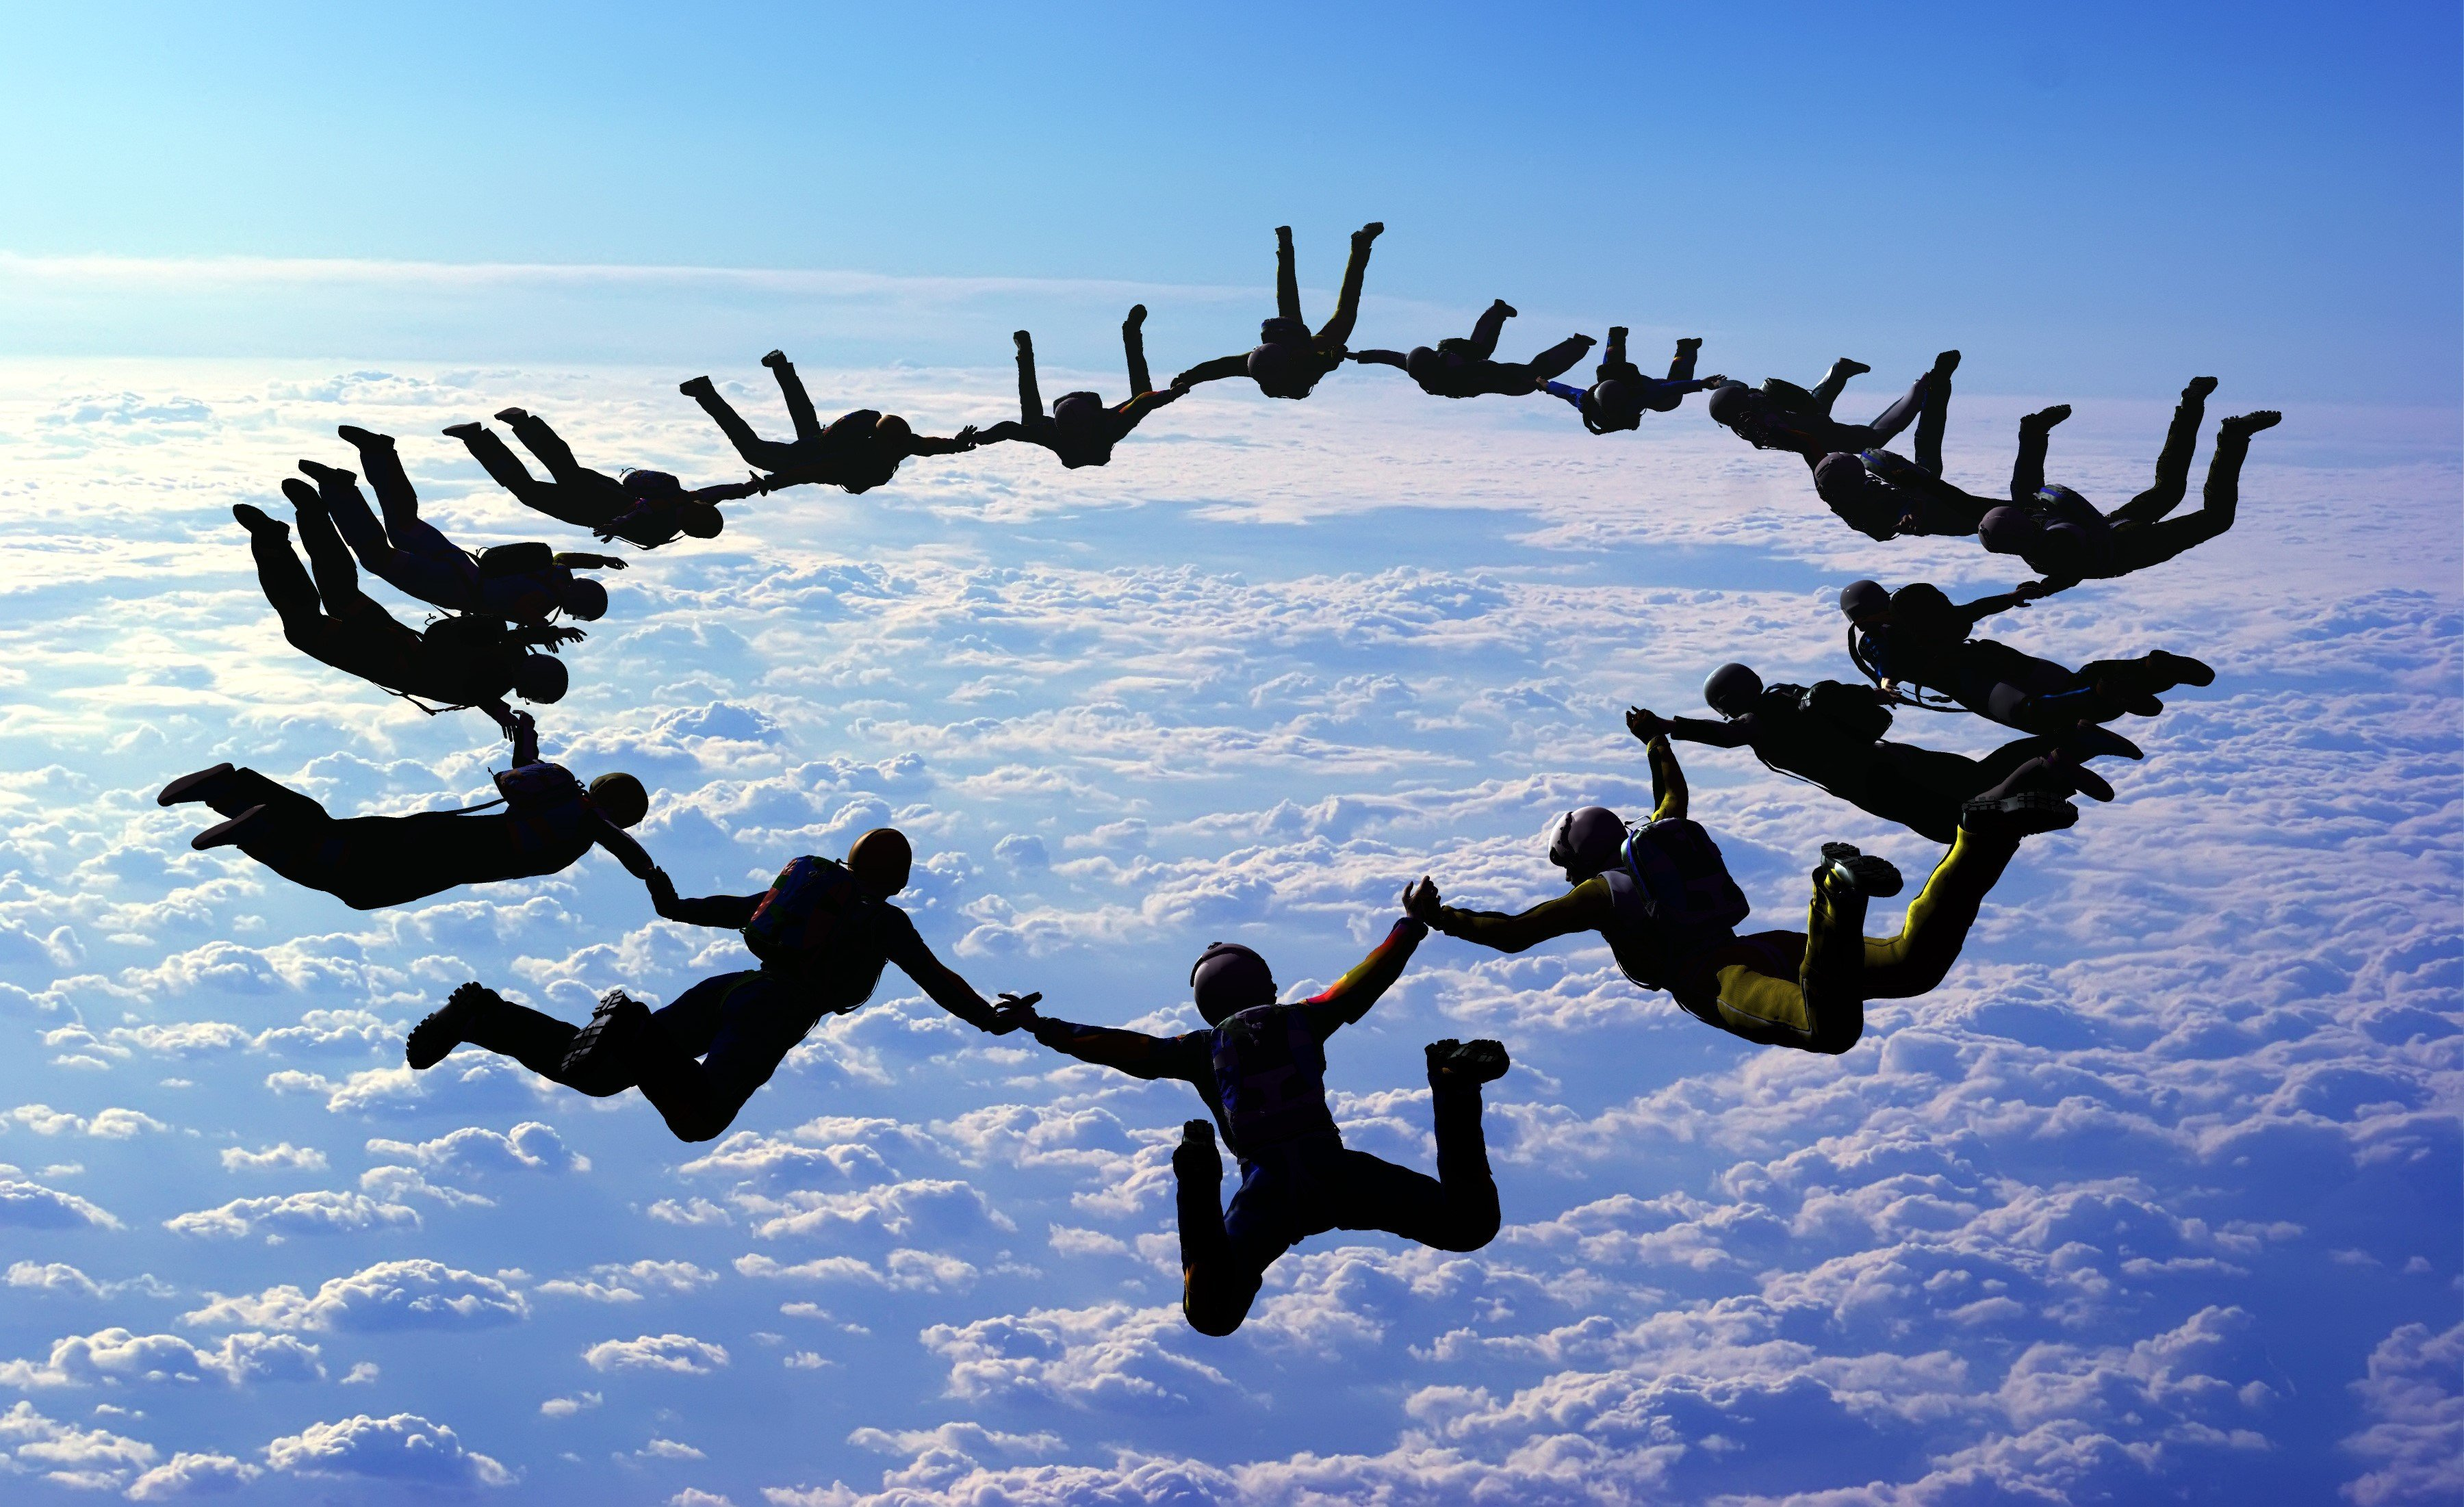 People parachute diving in open blue sky